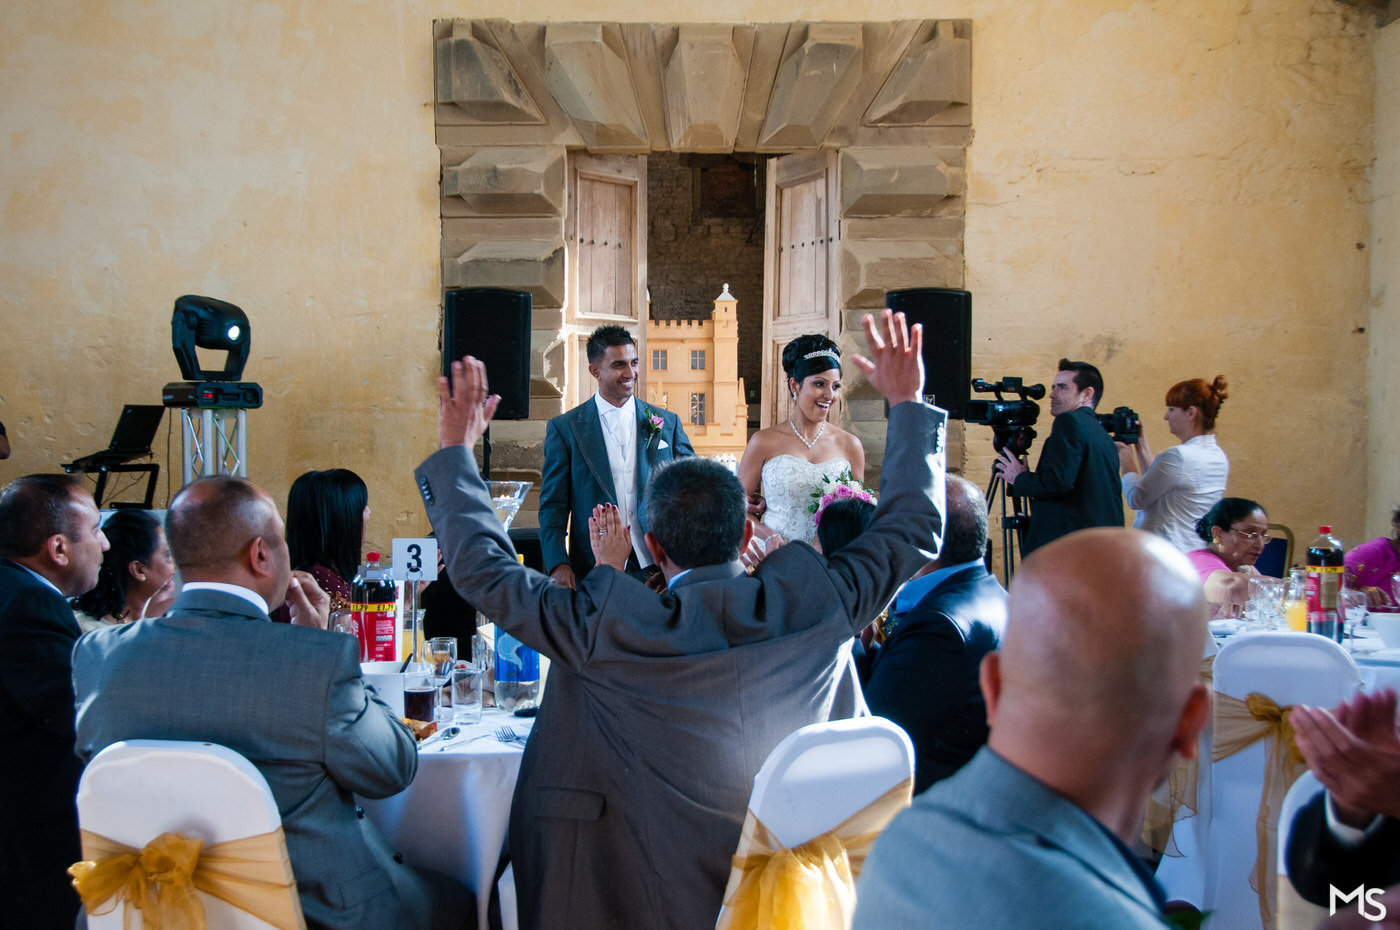 Bolsover-Castle-Indian-wedding - 25_DSC_5263.jpg